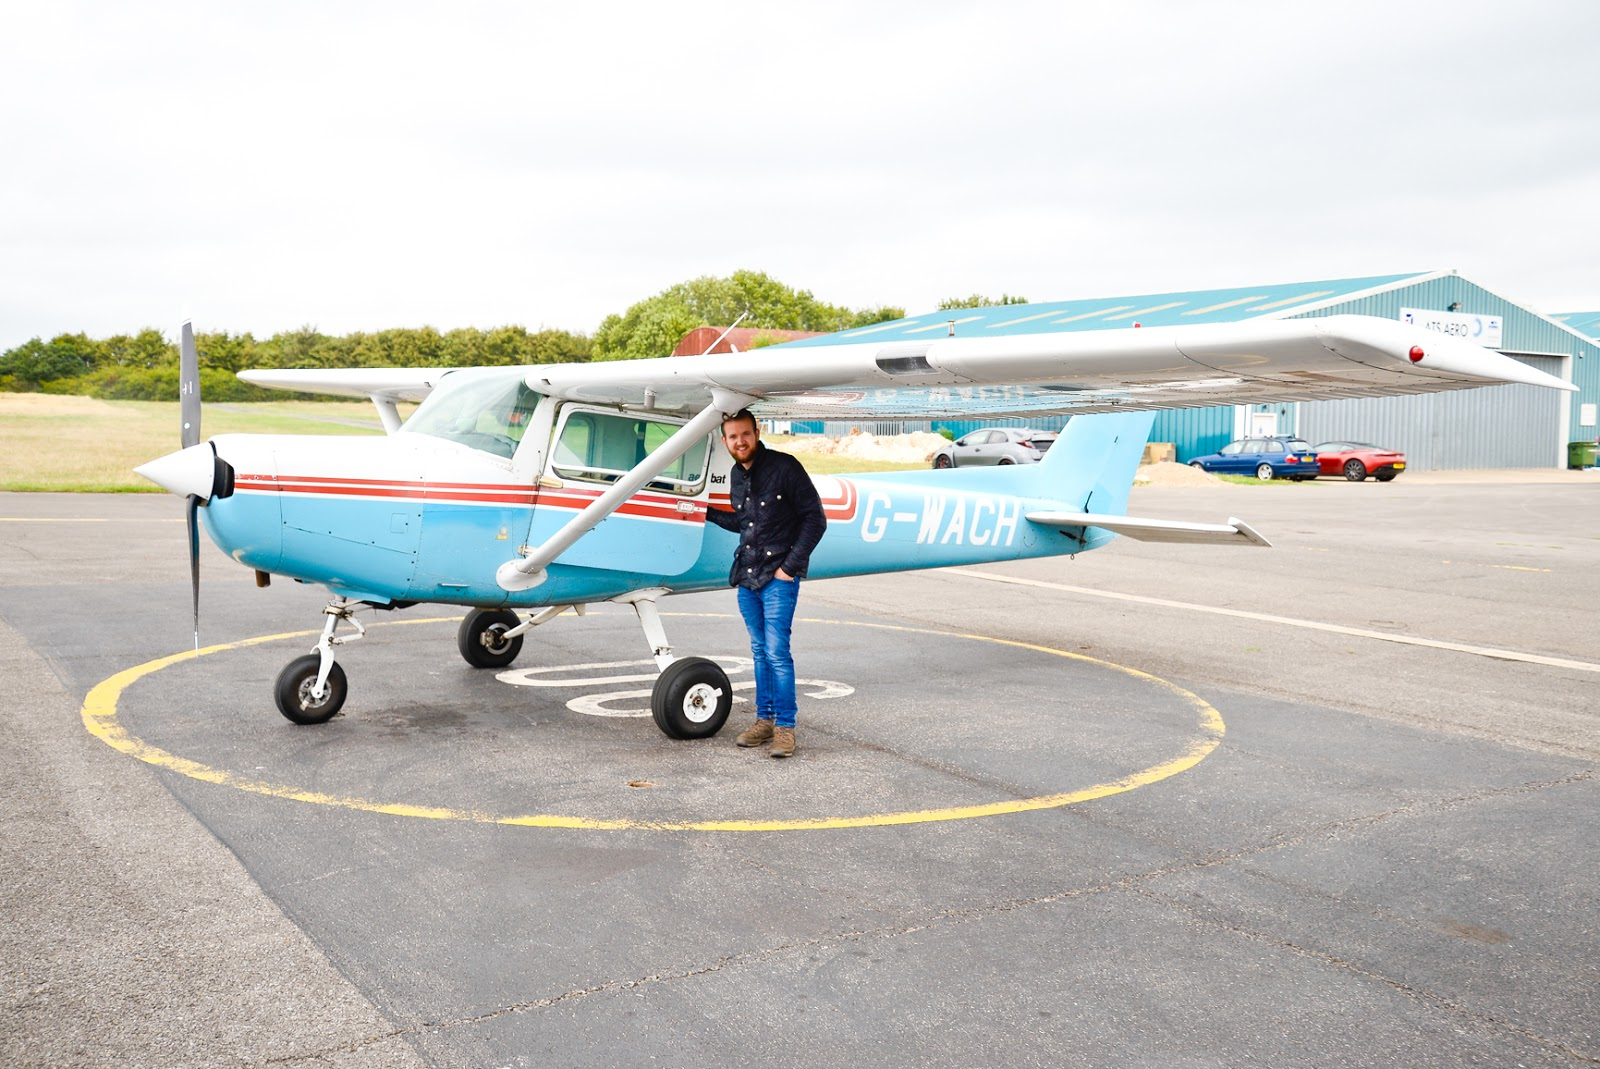 flying a plane gift experience, wycombe air park,